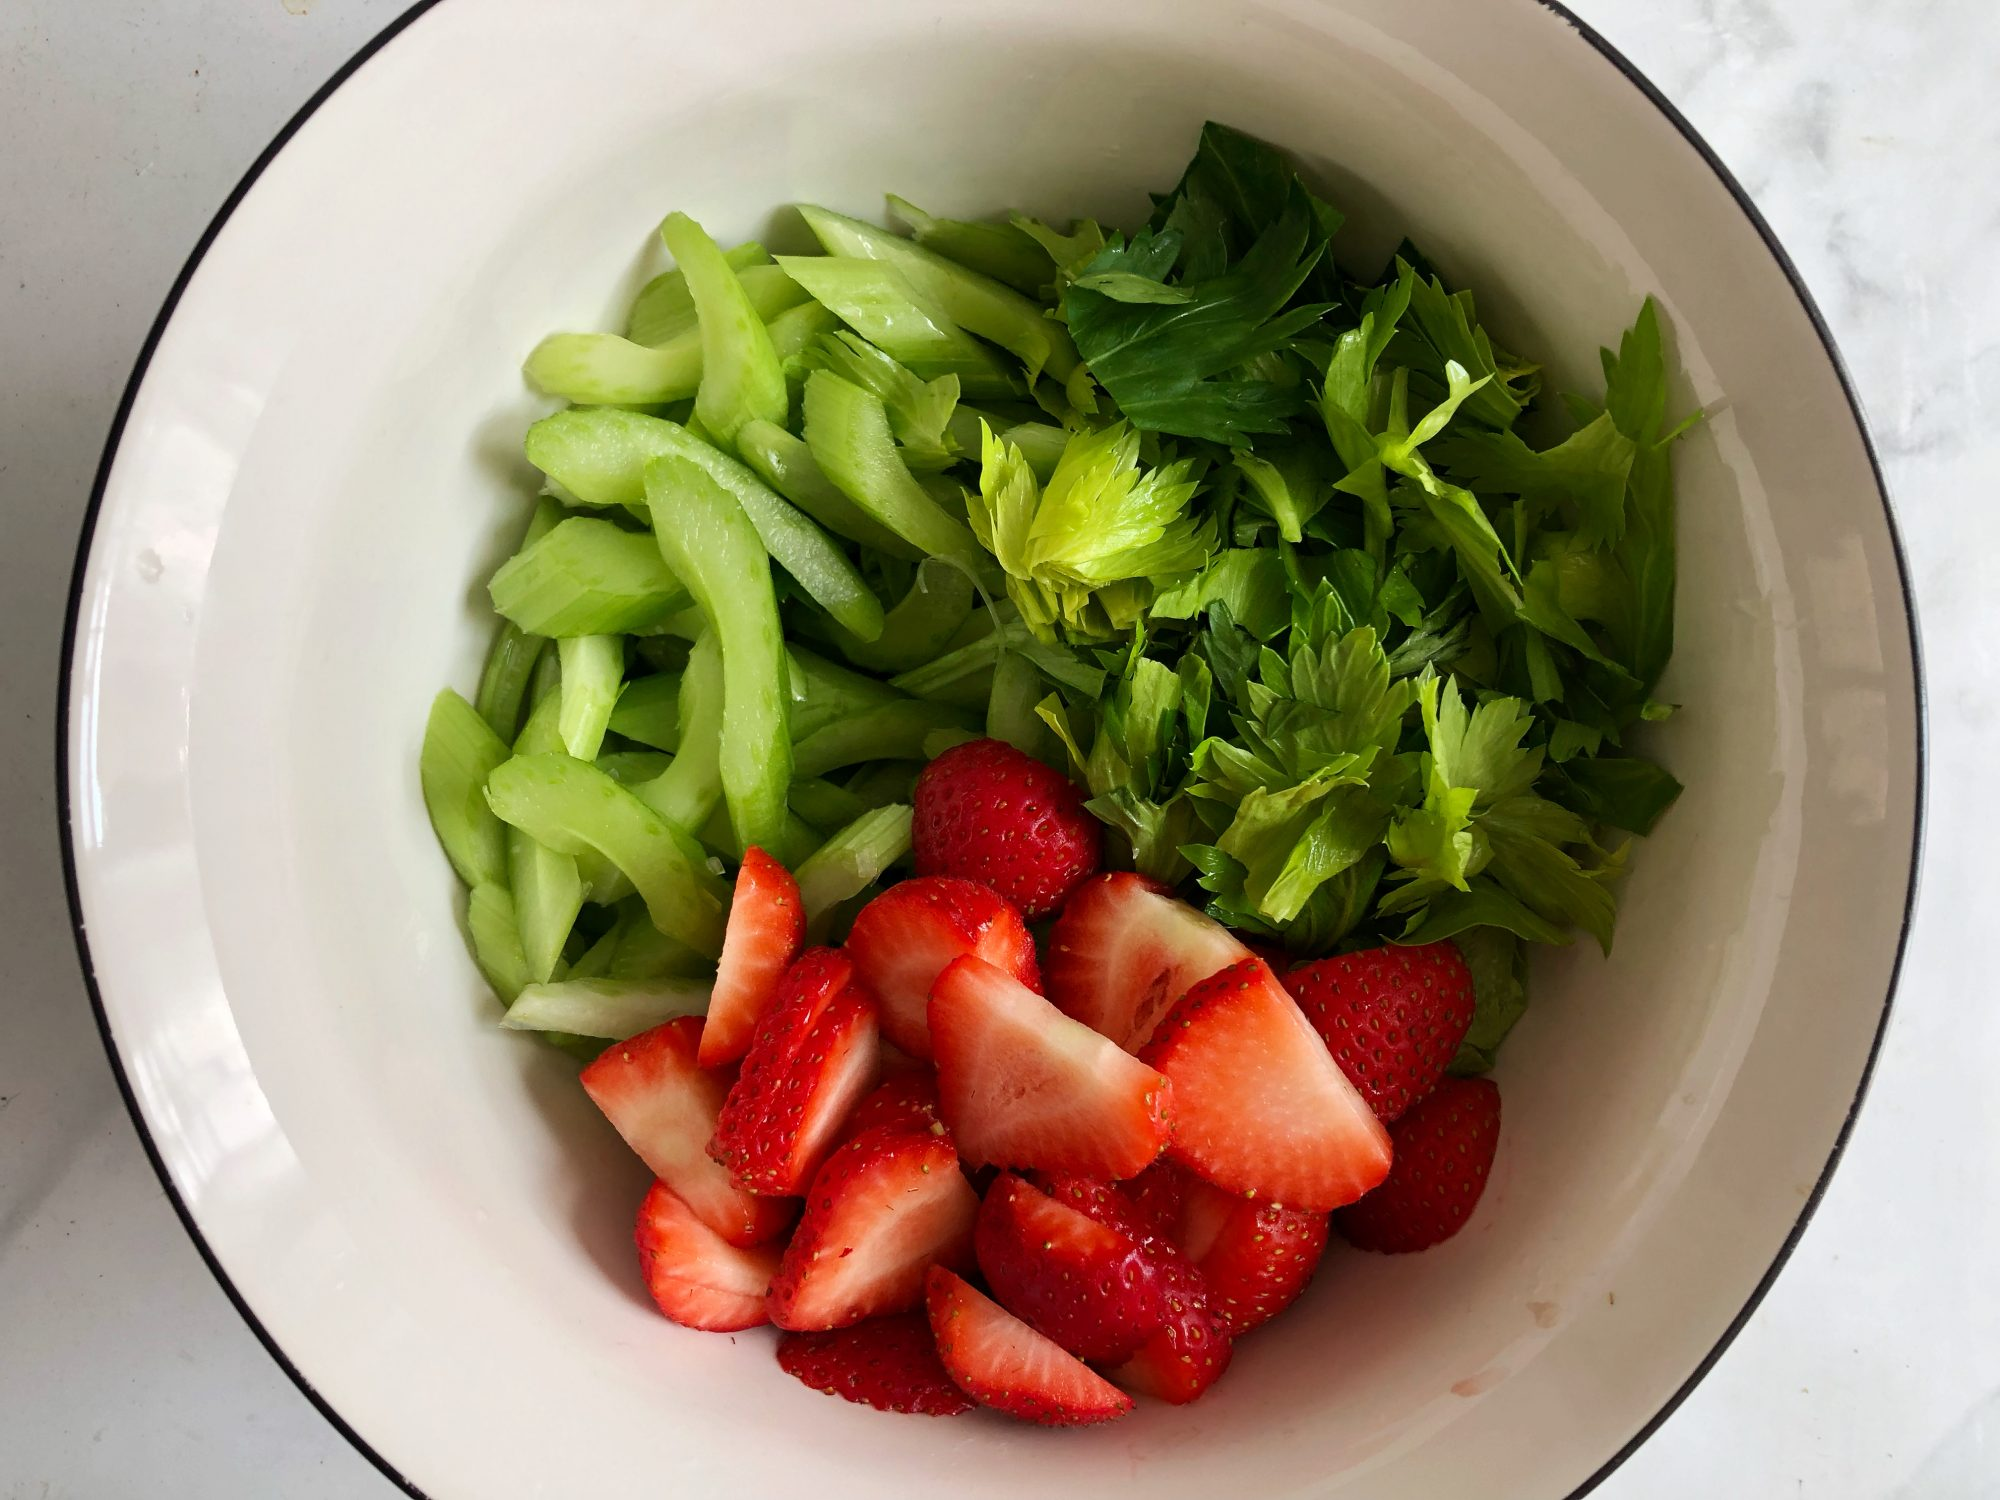 Chopped celery and sliced strawberries